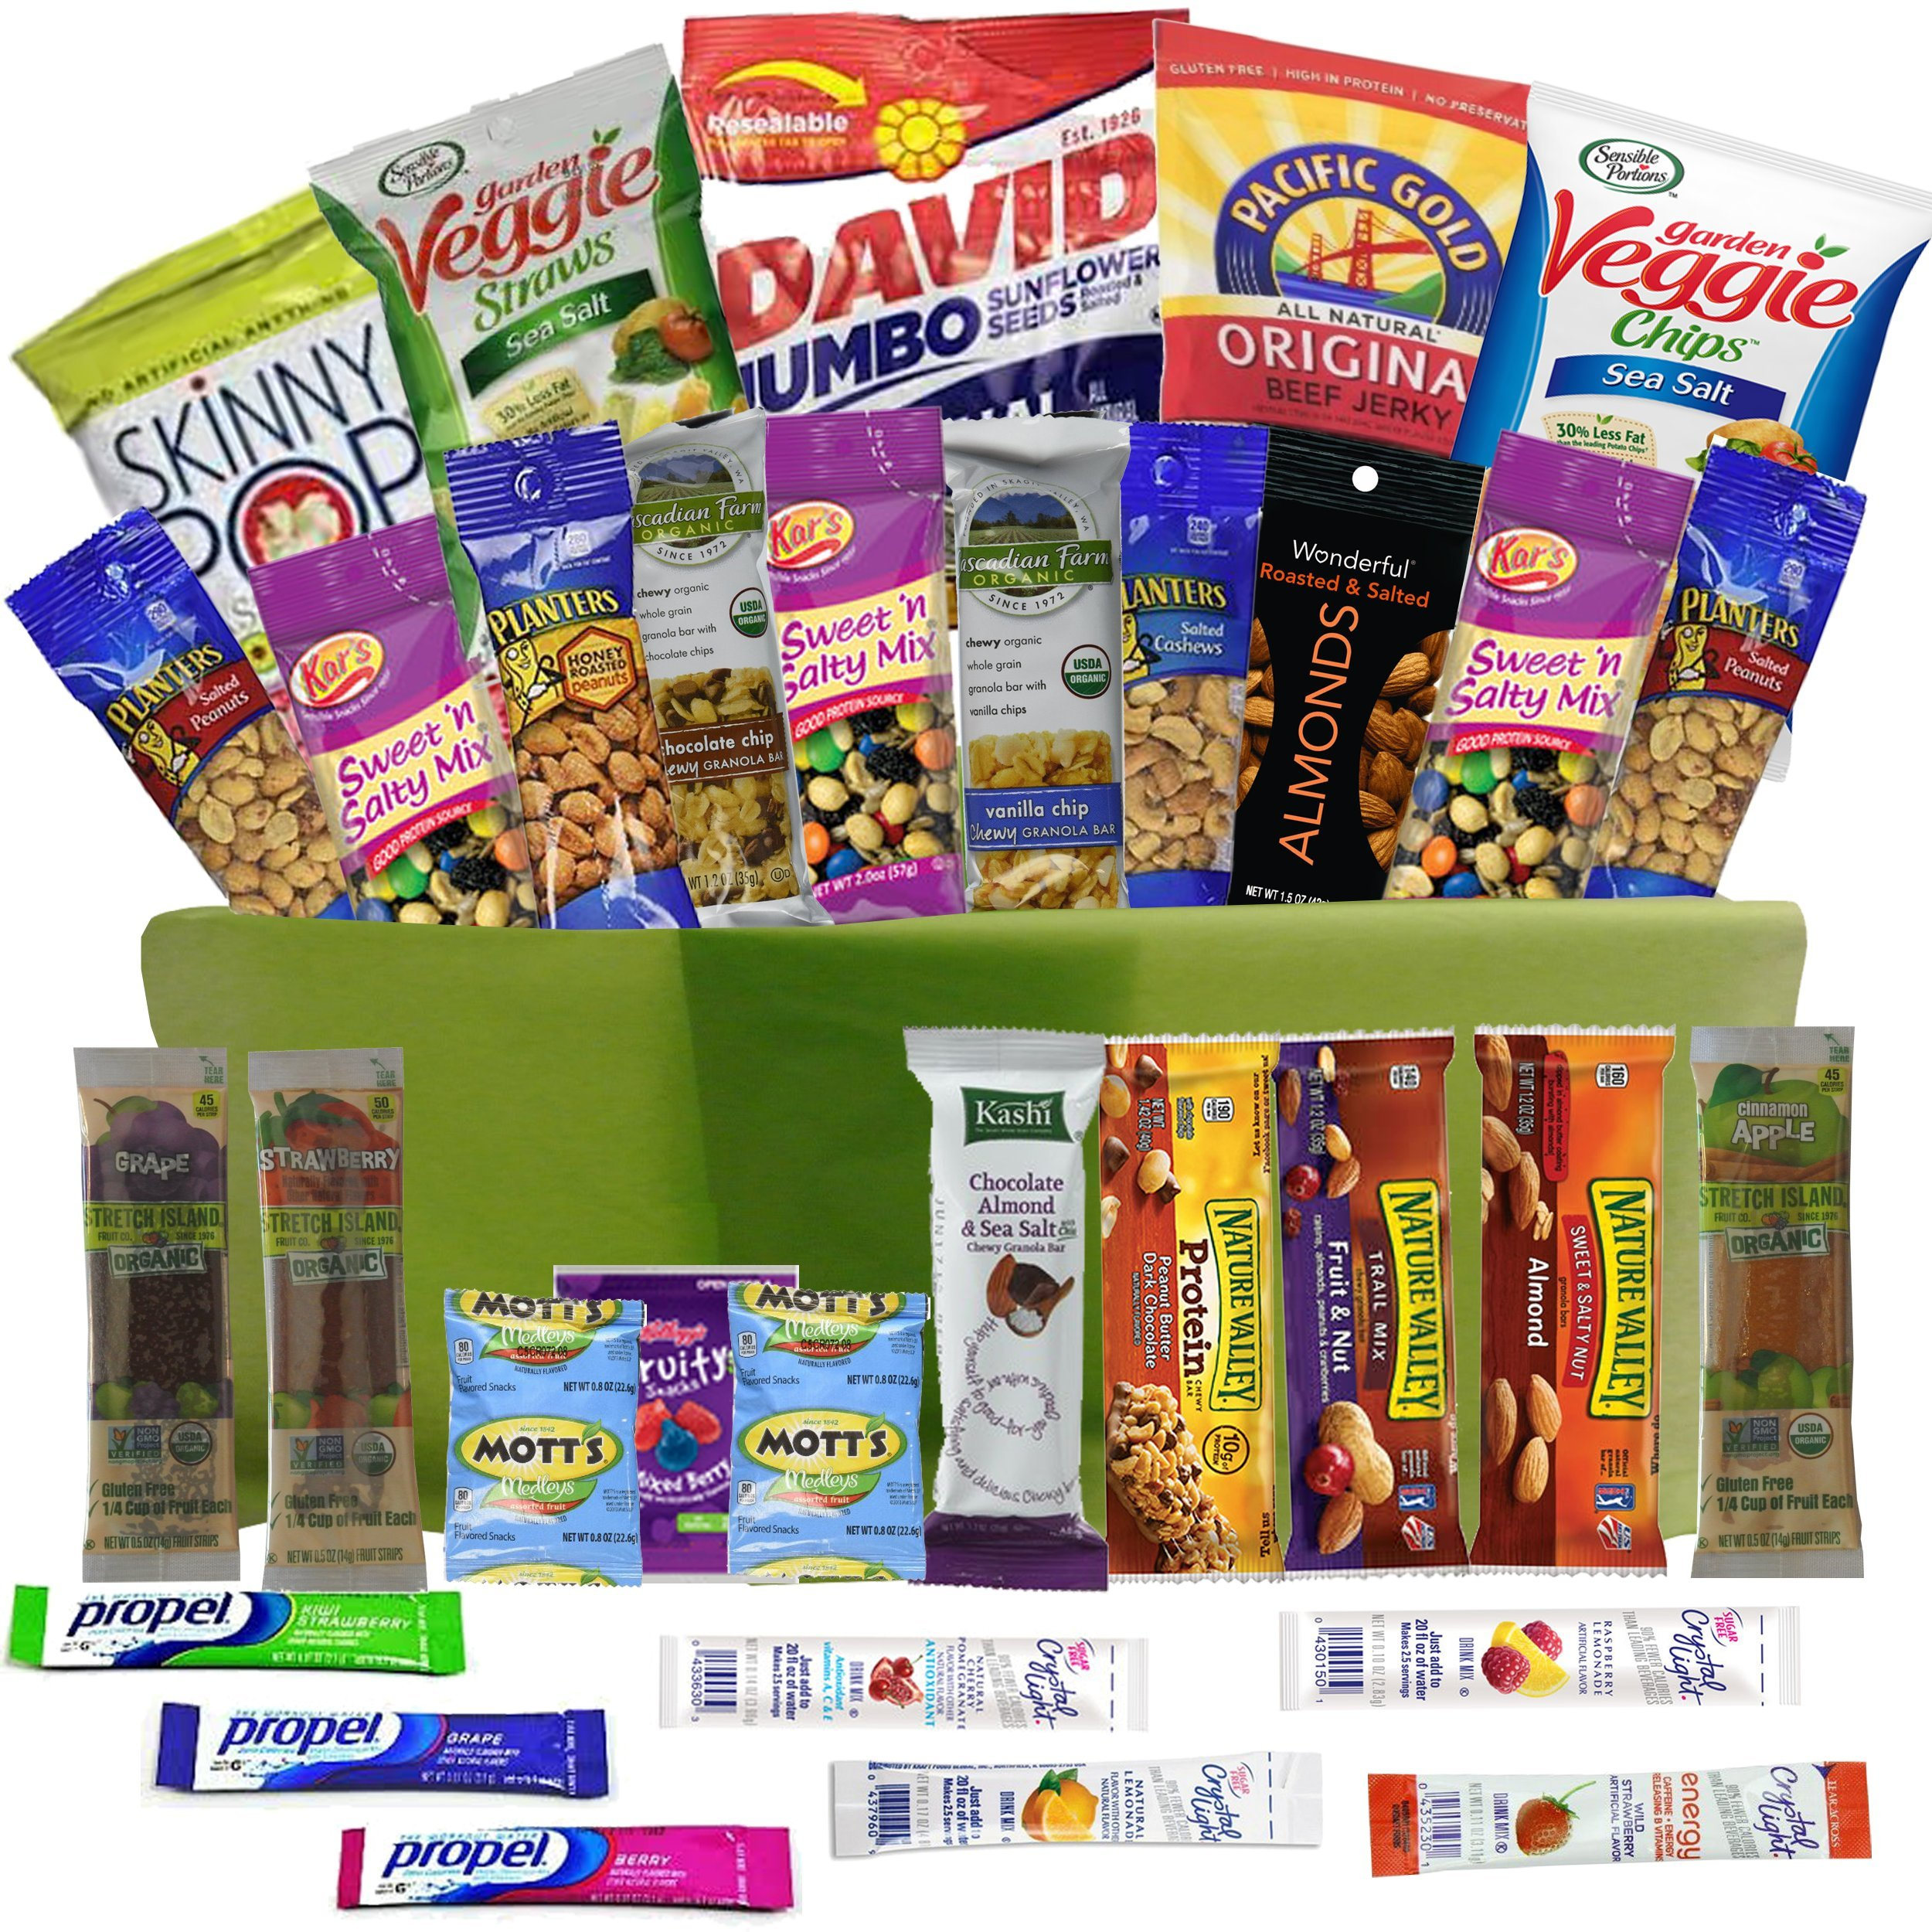 Healthy Snacks Care Package Gift Basket- 32 Health Food Snacking Choices - Quick Ready To Go - For Adults, College Students Gifts, Kids, Toddlers, Birthday Ideas - Say Thank You or Congratulations by Catered Cravings (Image #1)